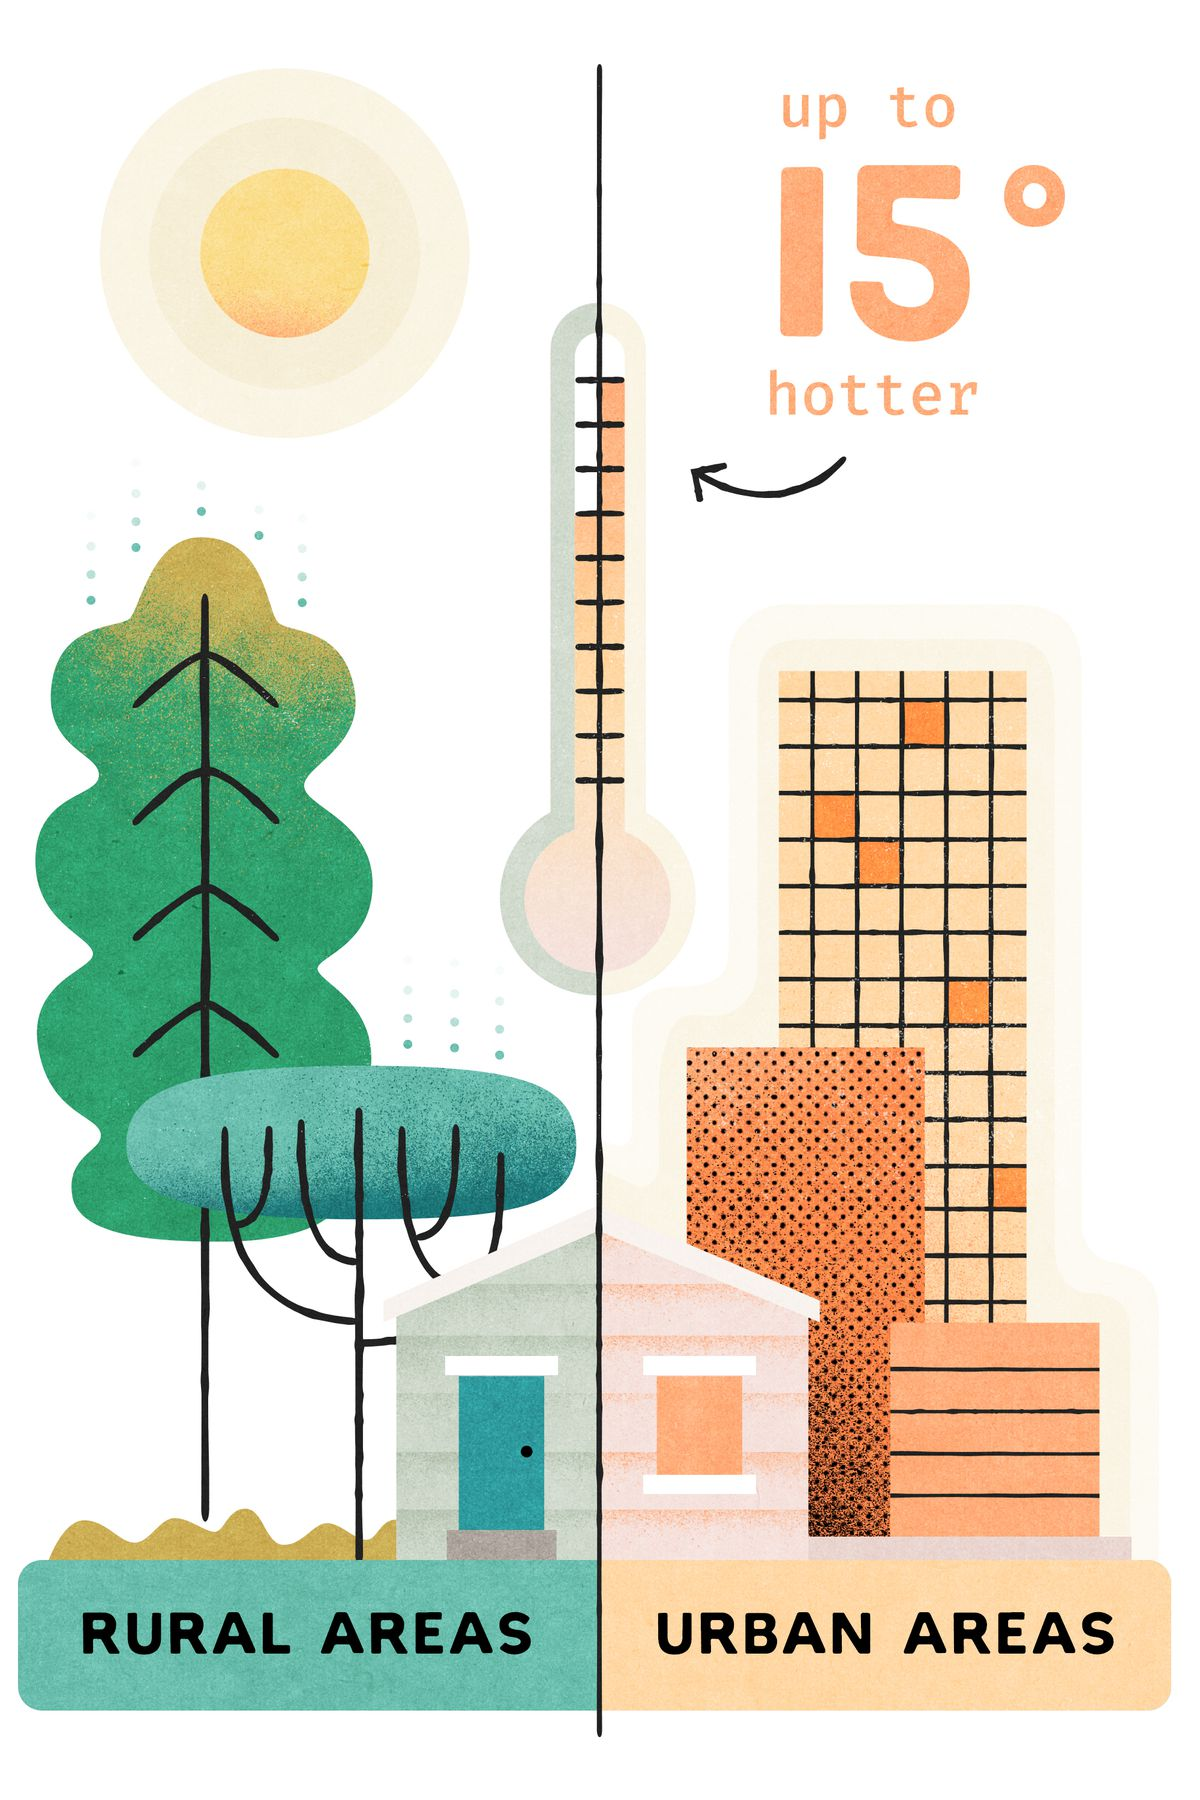 Infographic illustrating that urban areas without trees can be up to fifteen degrees hotter than rural areas with tree cover.